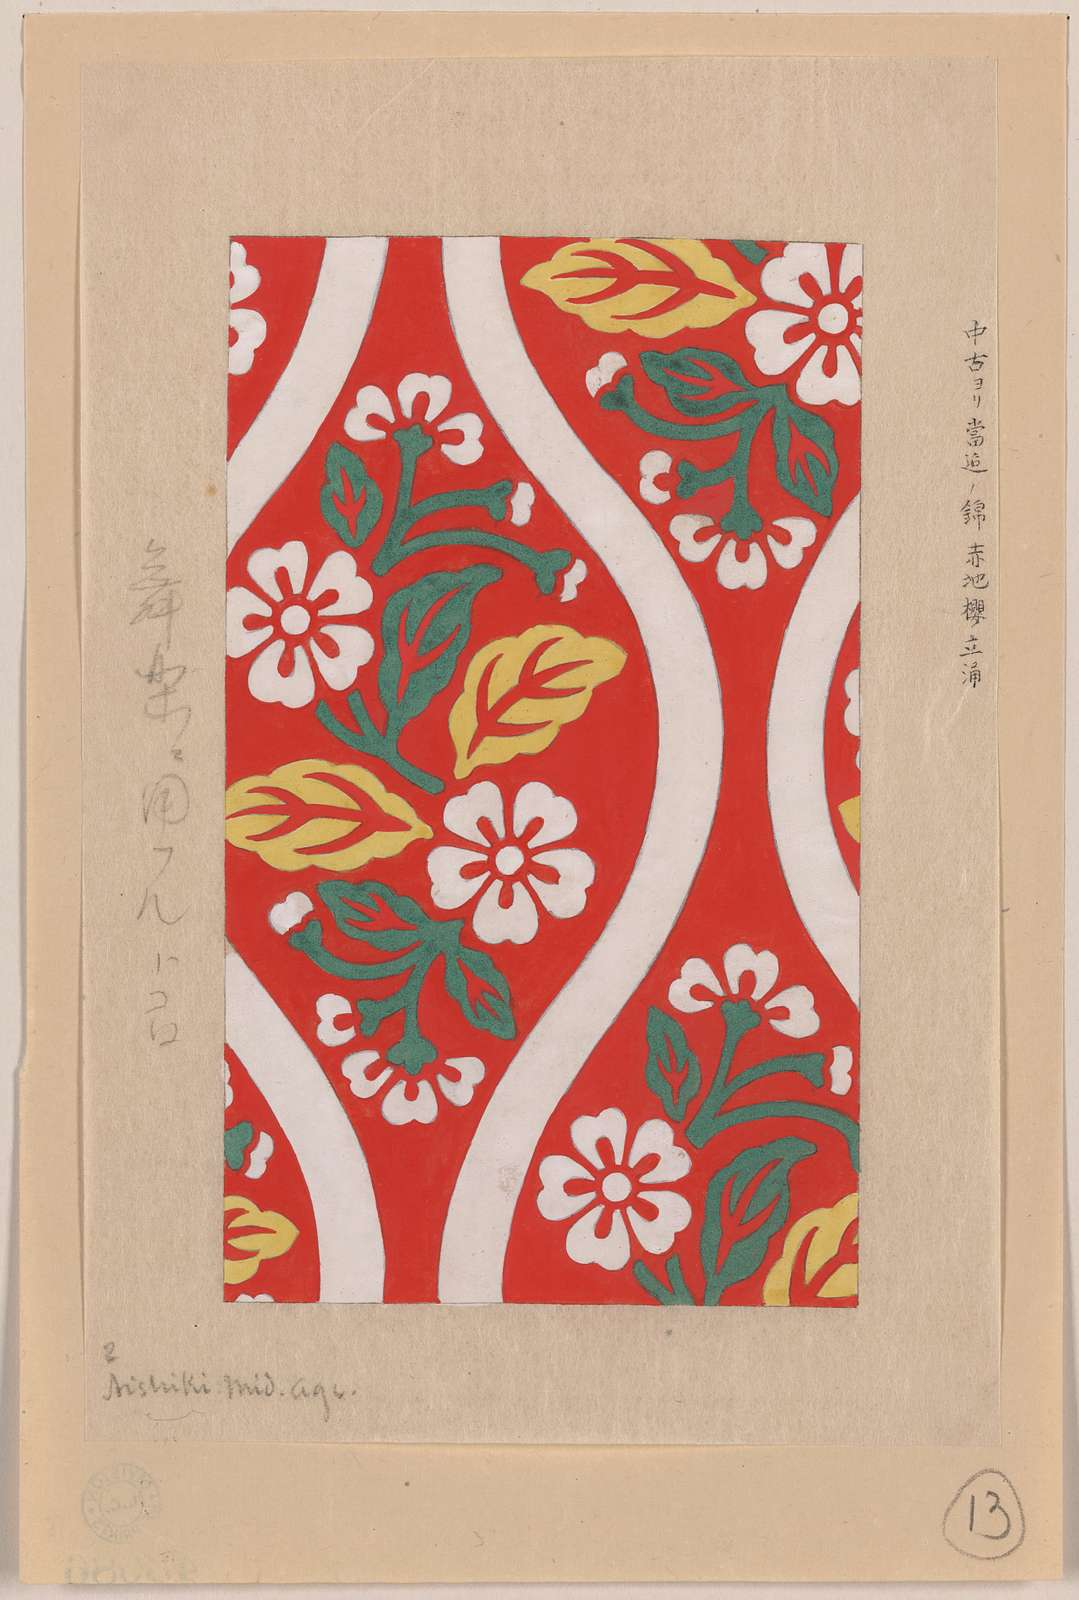 [Nishiki brocade with cherry blossoms and wave designs on red background]